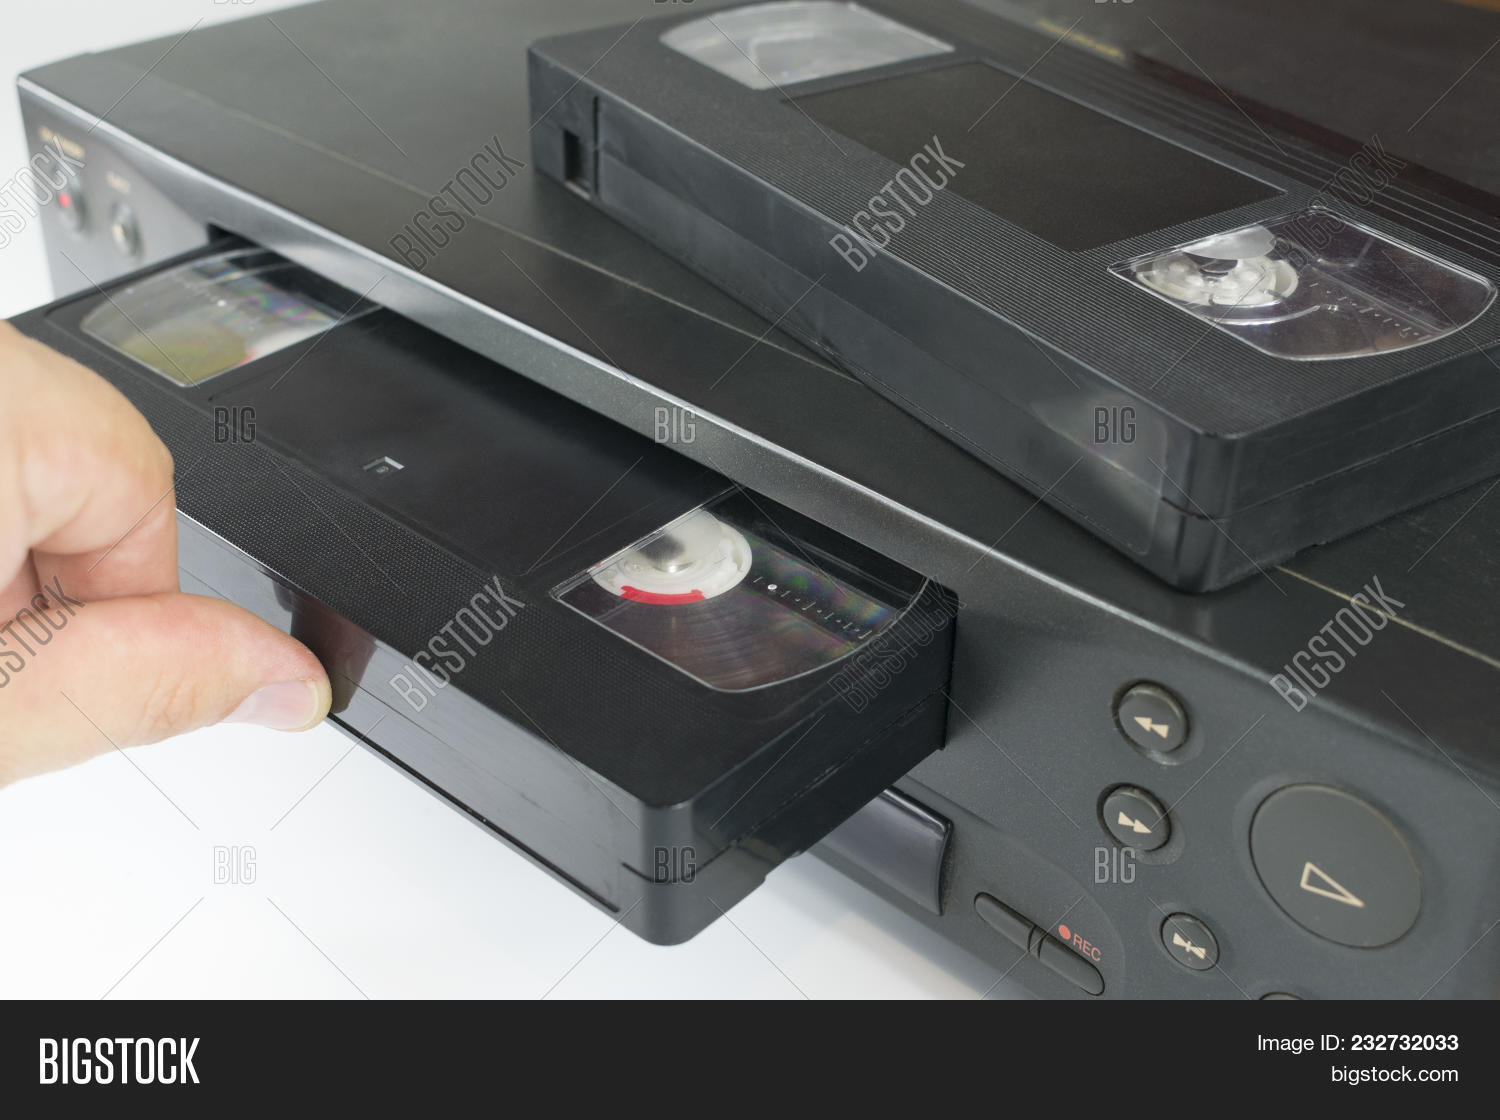 Vhs Videocassette Is Put Into The Video Recorder To Watch Another Cassette